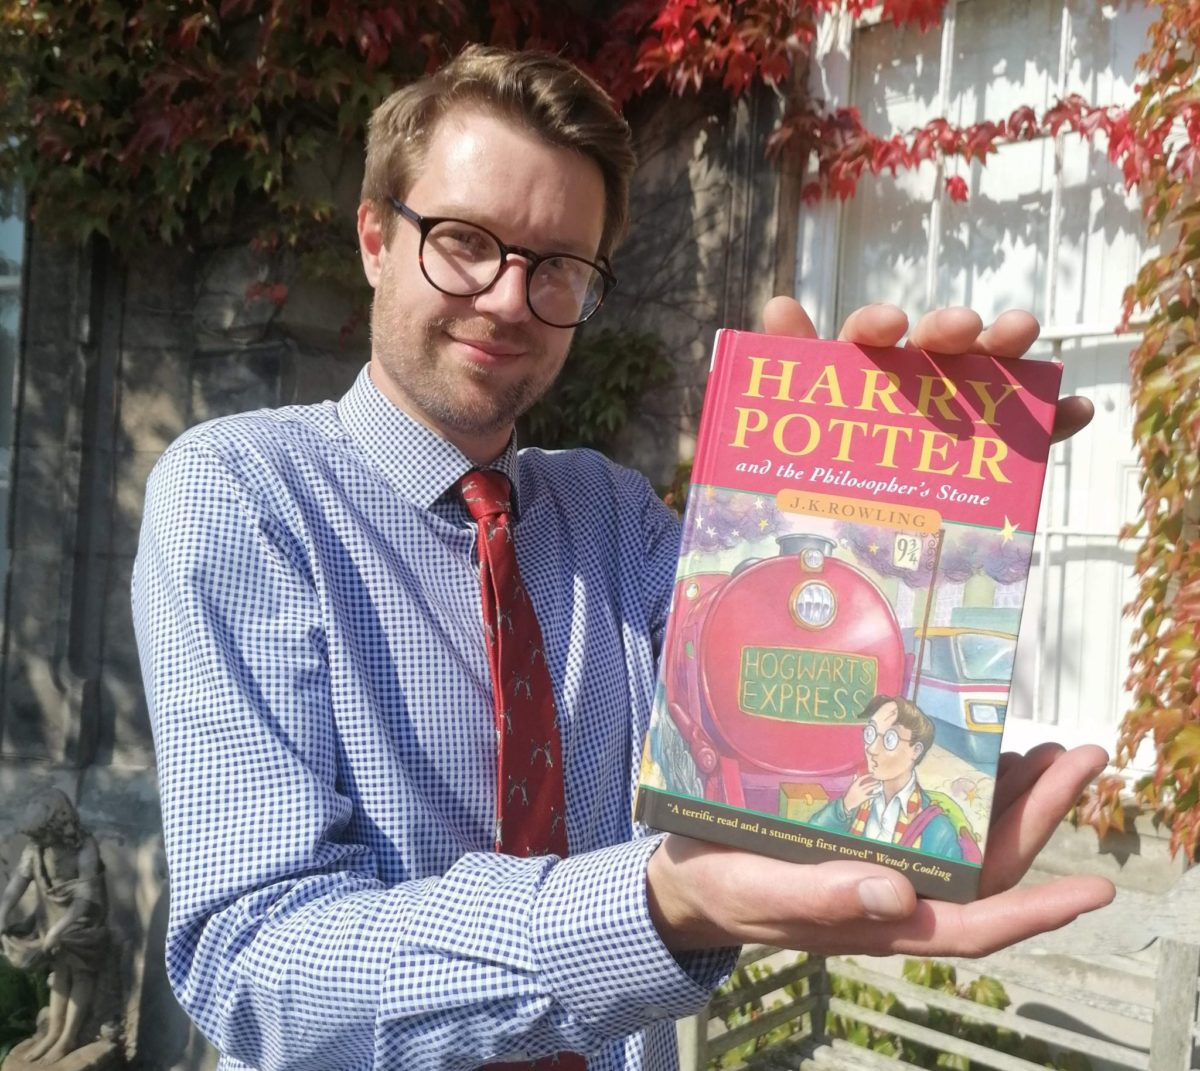 Dad Shocked to Find Harry Potter 1st Edition Worth Thousands on His Book Shelf